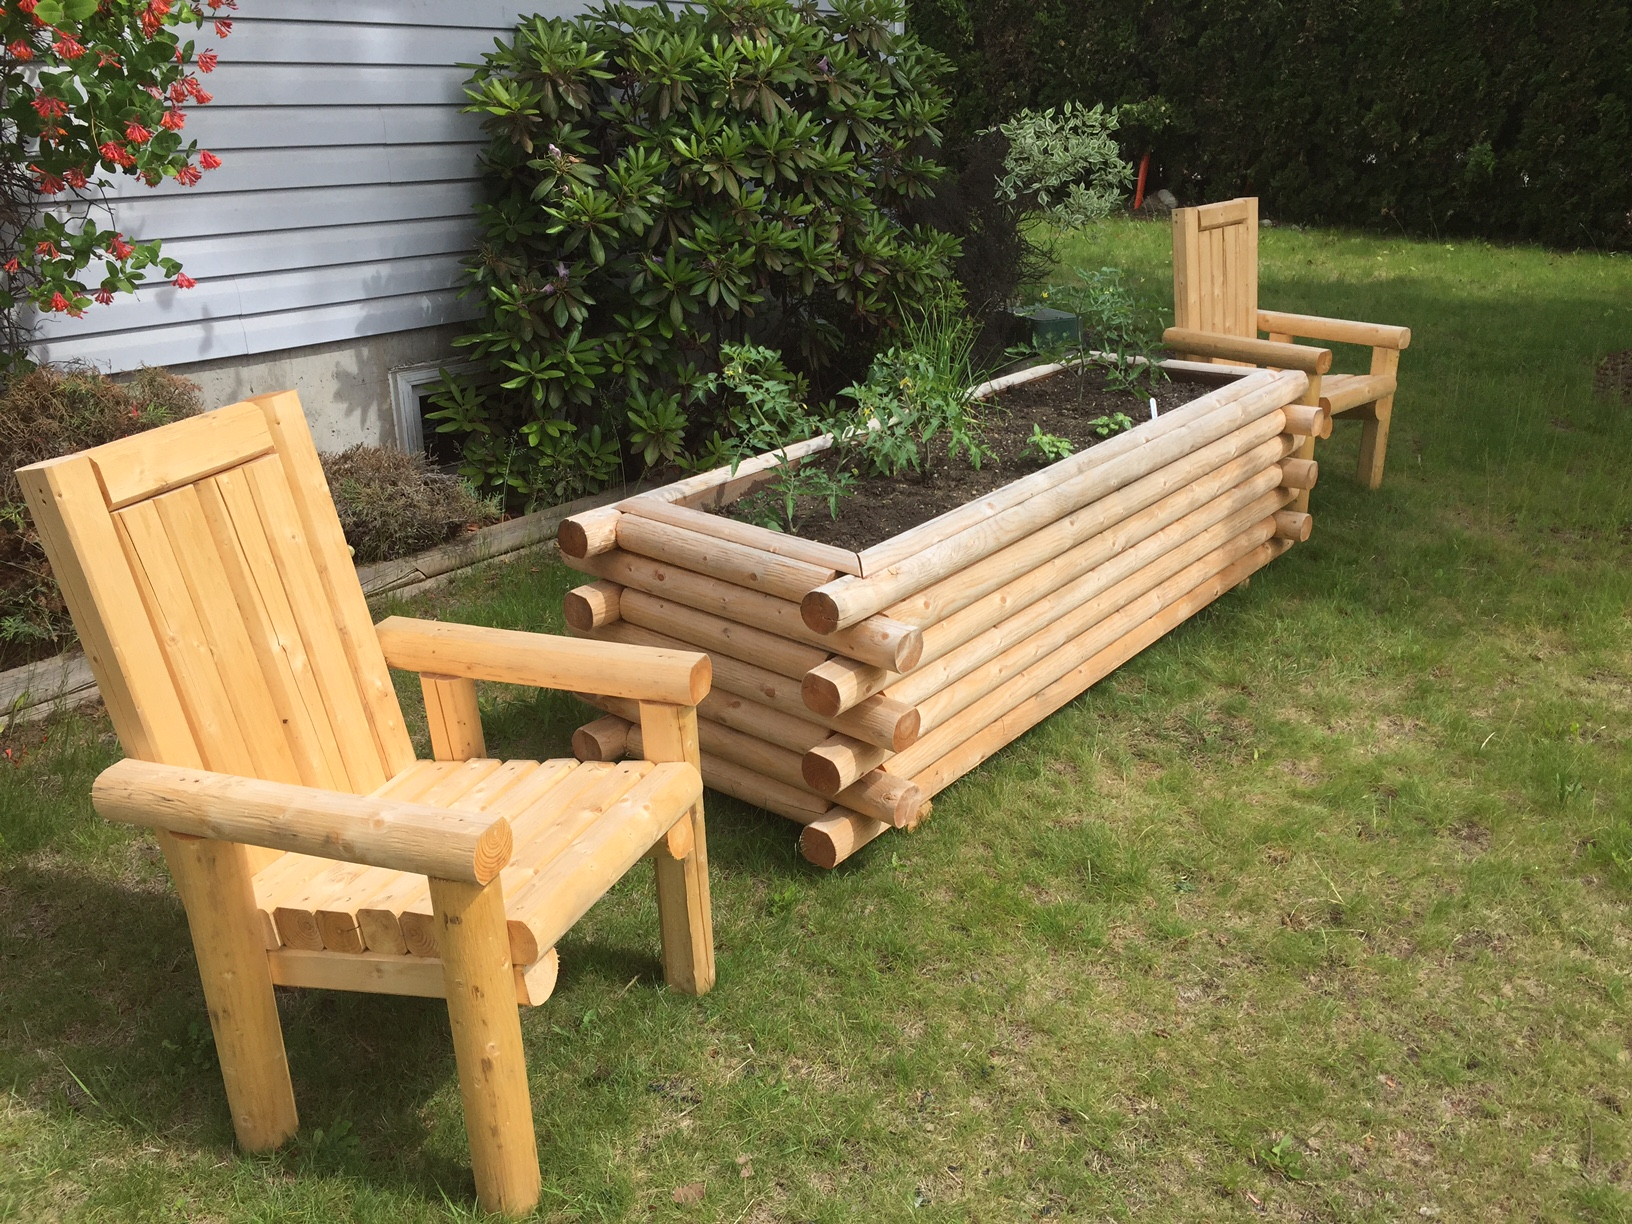 Flower bed & Chairs 2.JPG